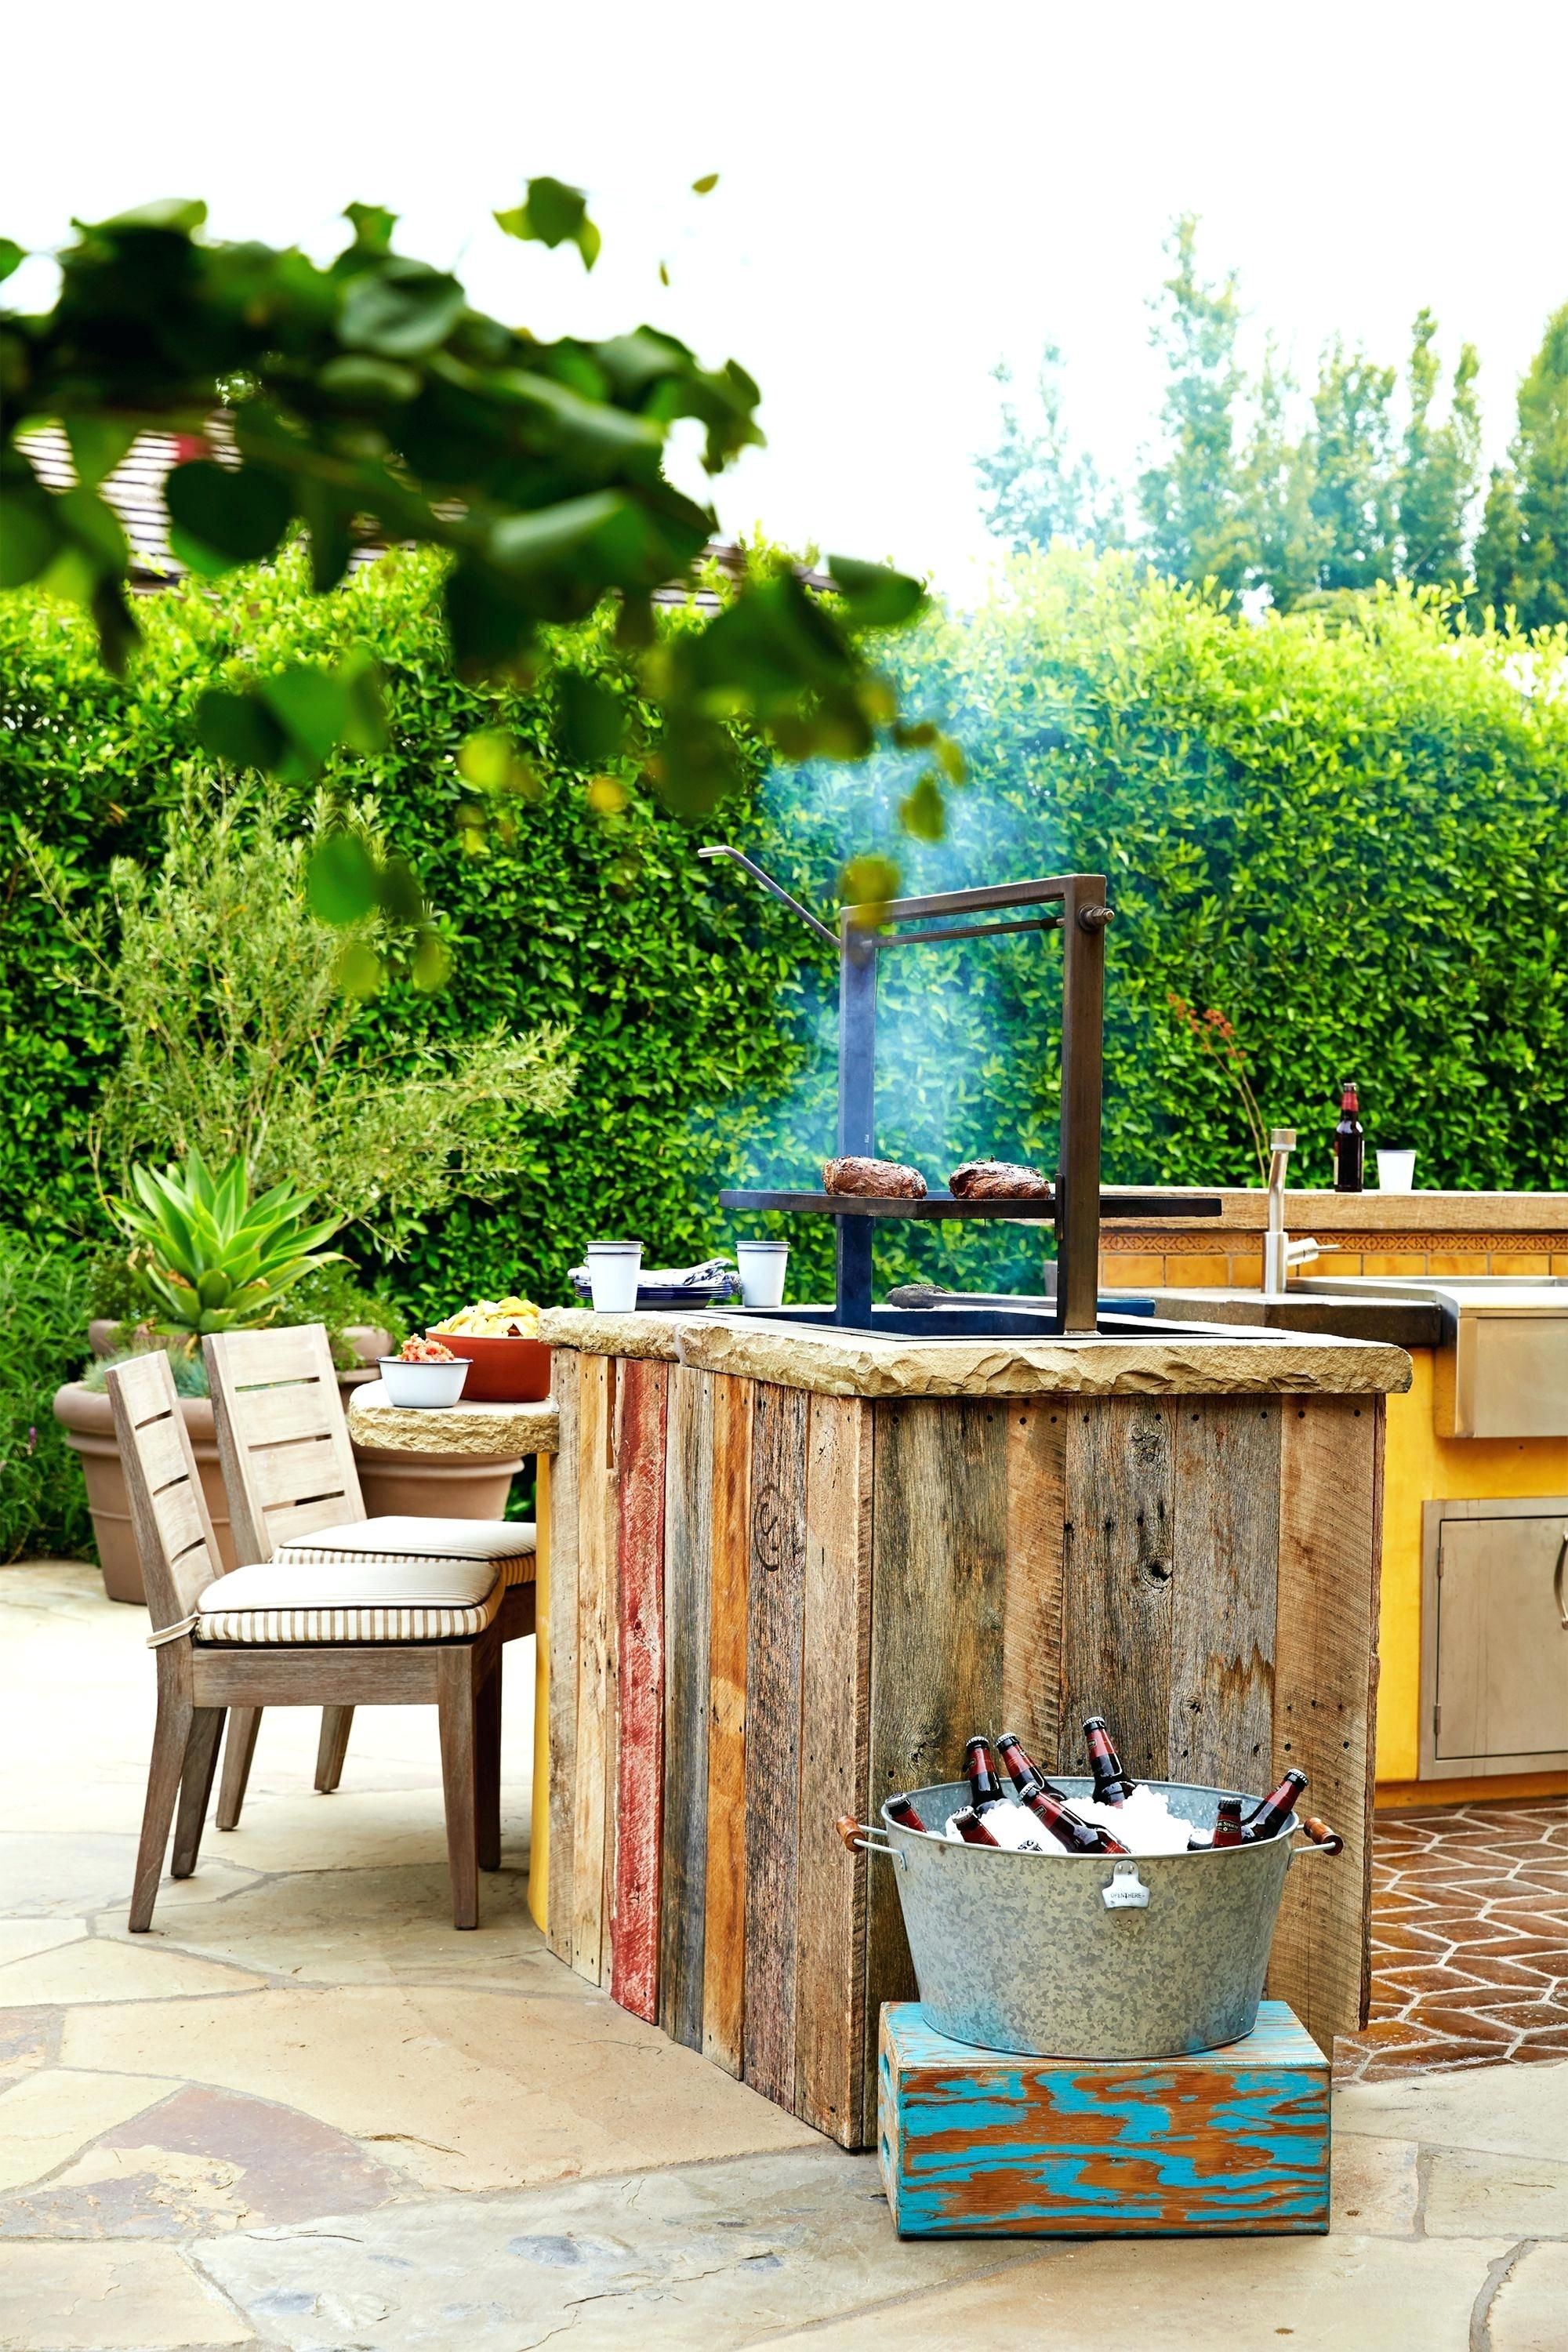 Outdoor Kitchen Ideas On A Budget Affordable Small And Diy Outdoor Kitchen Ideas Rustic Outdoor Kitchens Outdoor Kitchen Design Outdoor Kitchen Decor